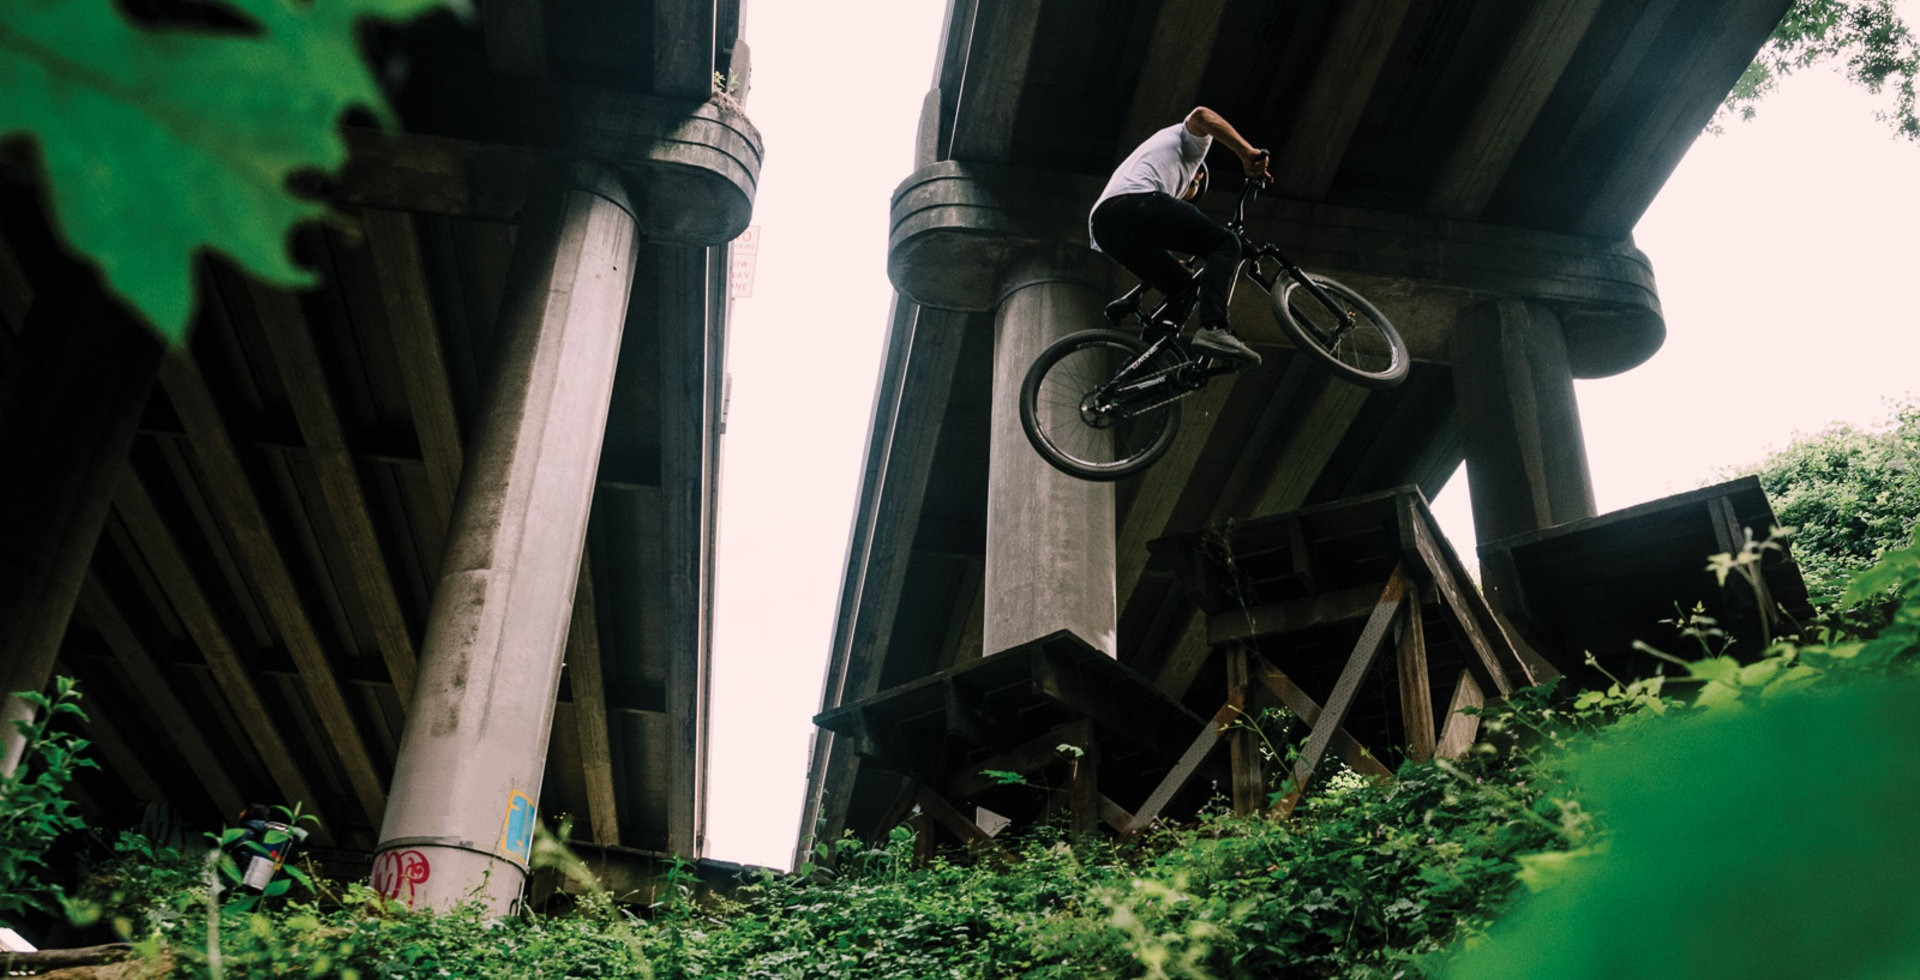 As the first urban mountain bike park in the United States, Colonnade opened the door on an entirely new realm for the sport—and thanks to the then-fledgling Evergreen Mountain Bike Alliance, set the bar for what community-based advocacy could accomplish. Carson Storch styles a 360 while demonstrating proper under-Interstate form.